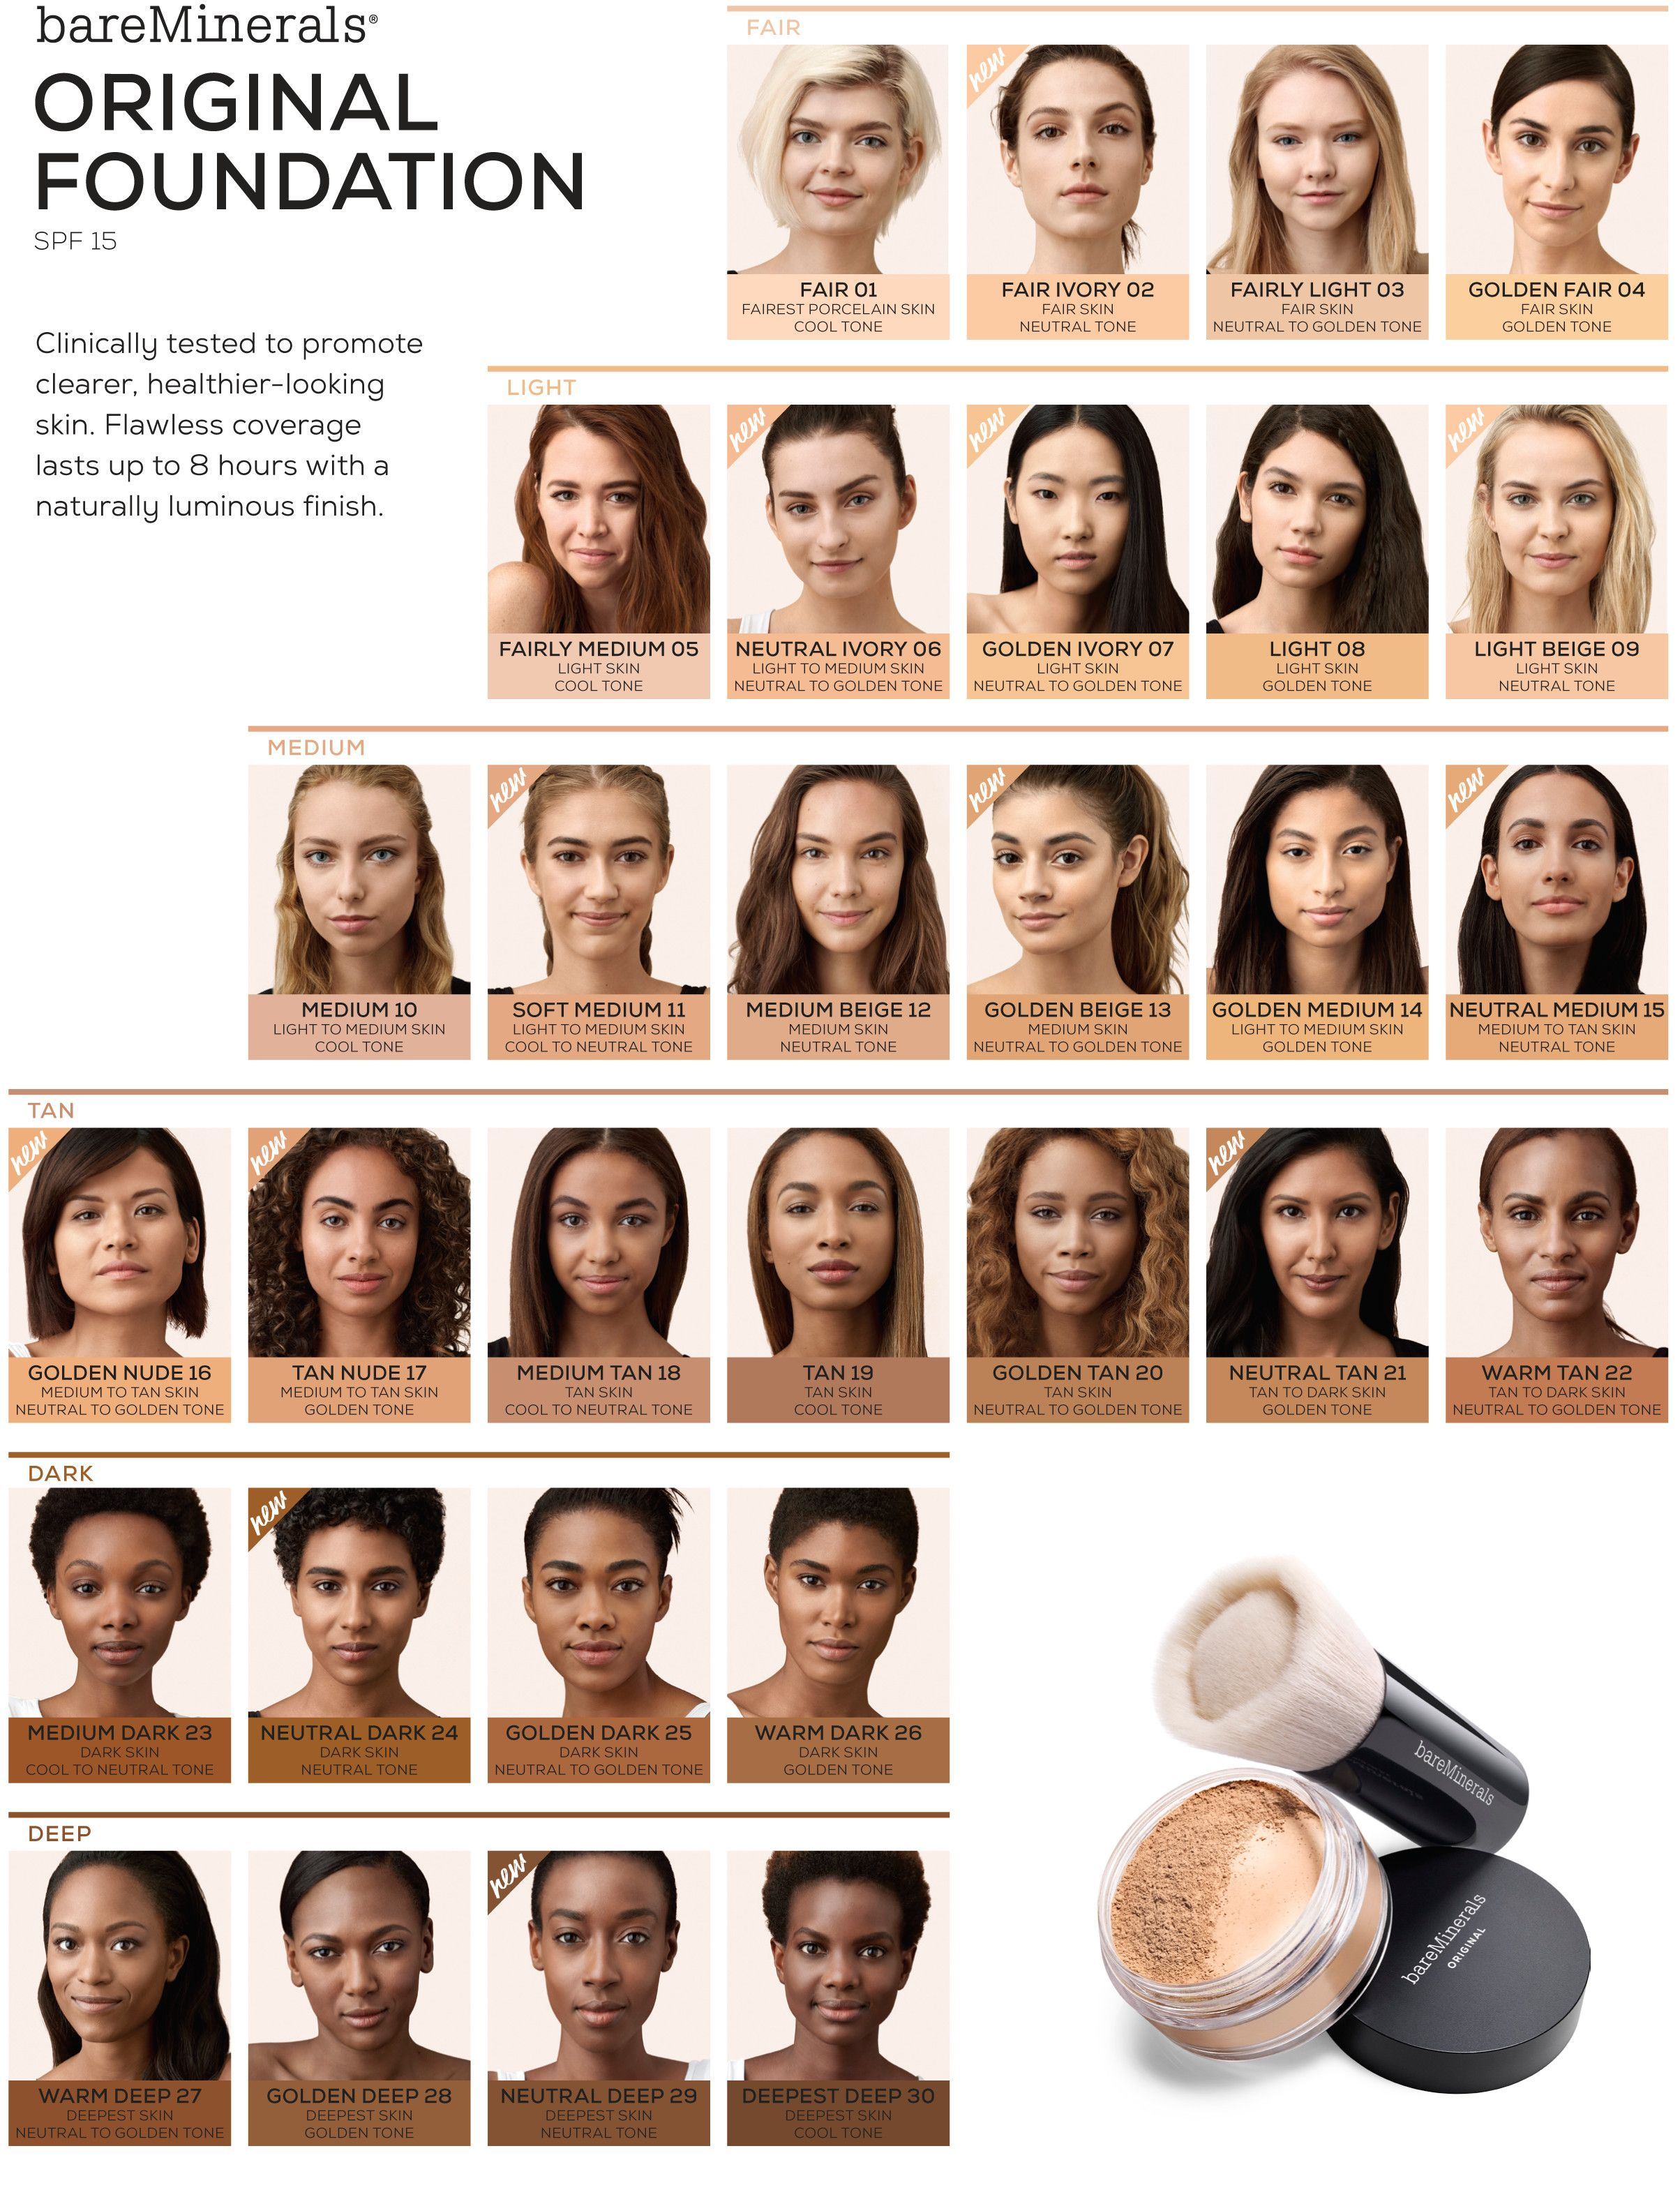 Bildresultat For Bareminerals Foundation Loose Powder Foundation Bare Minerals Foundation Bare Minerals Original Foundation